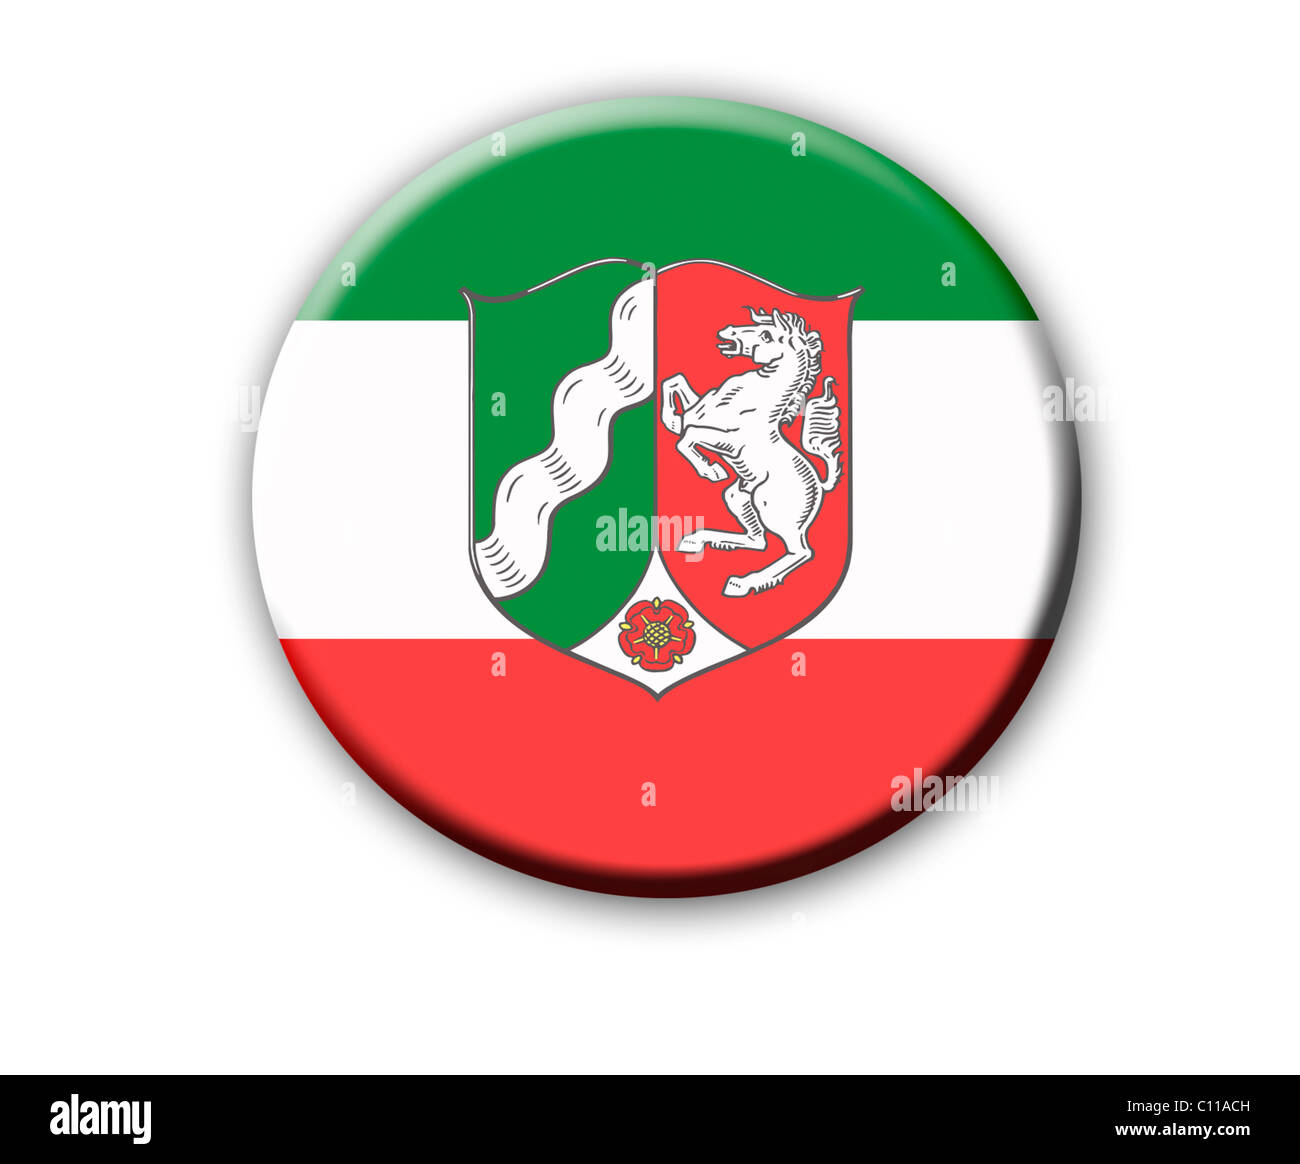 Coat of arms of the state North Rhine-Westphalia, Germany - Stock Image